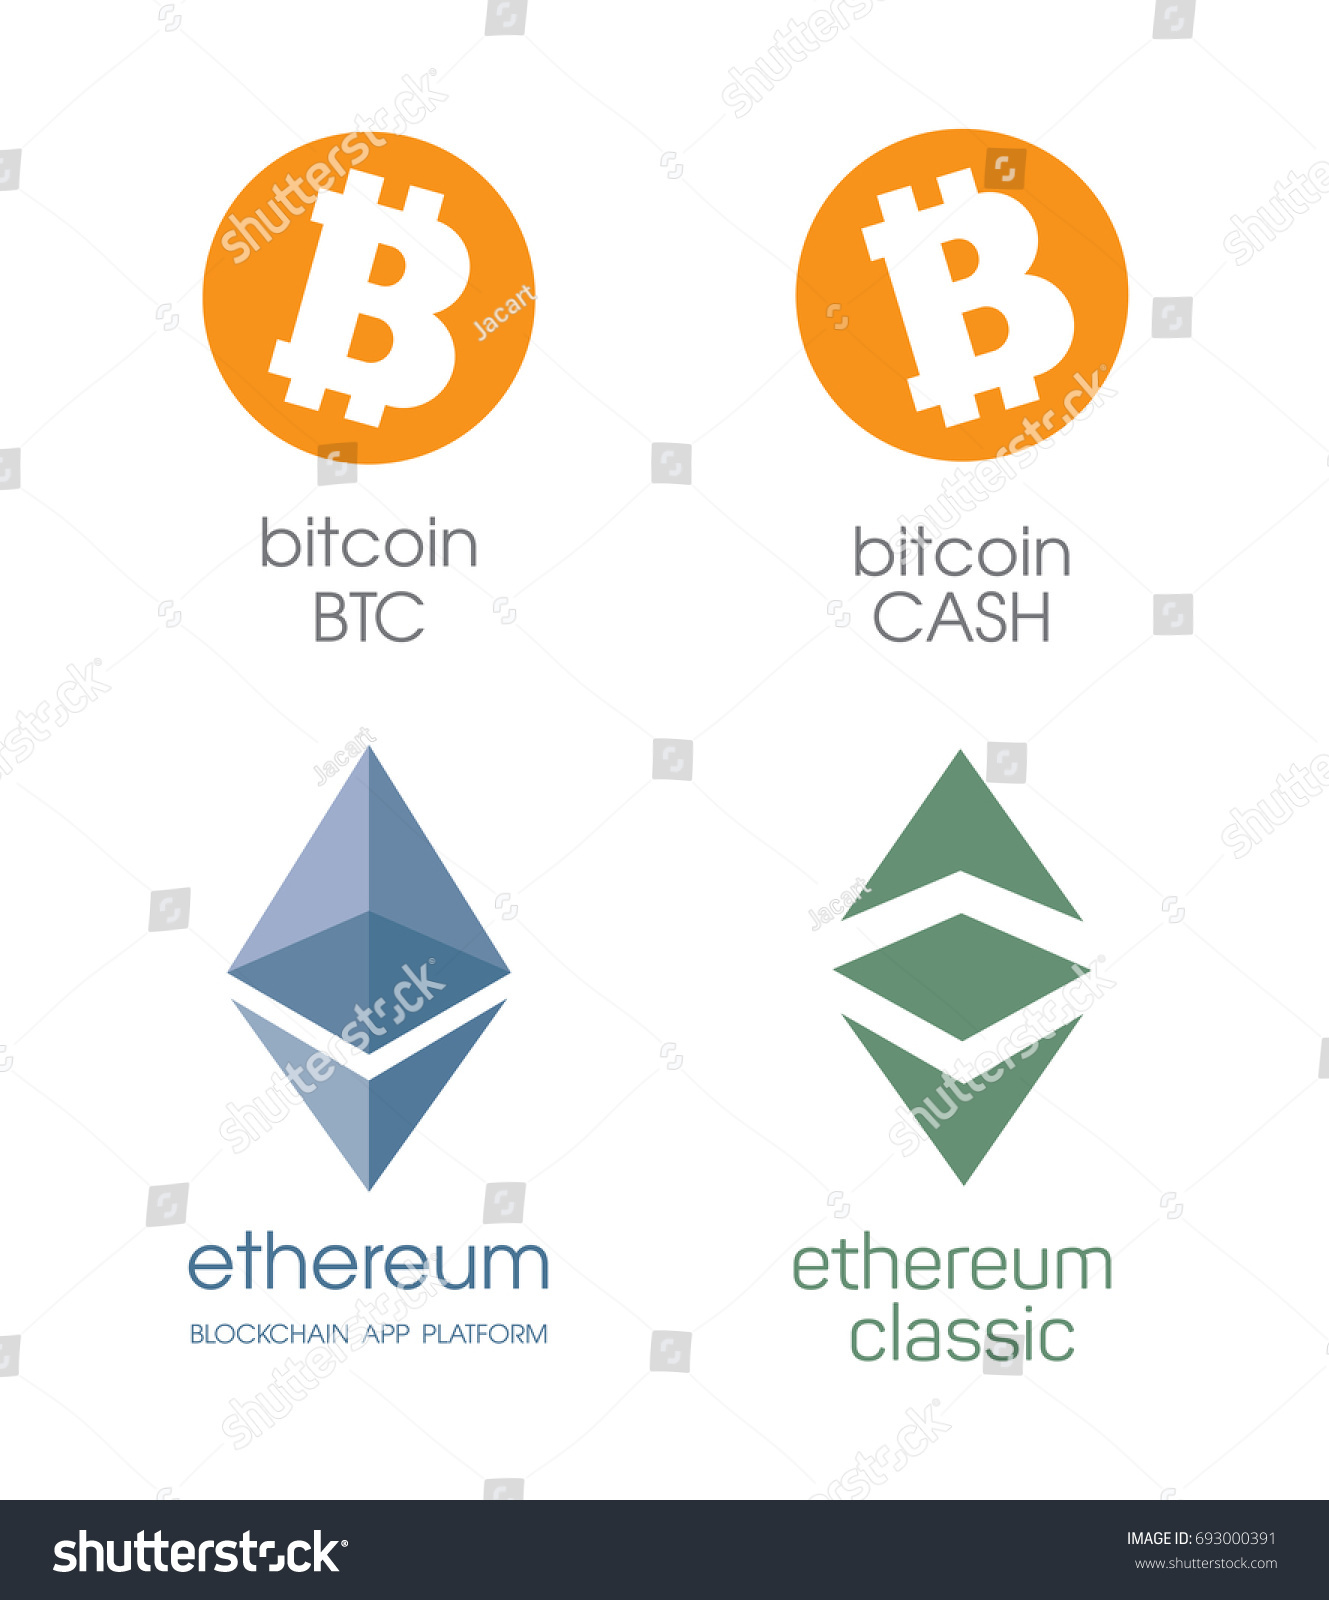 Logo Bitcoin And Cashe Ethereum Cripto Currency Chrystal Icon Blockchain Platform